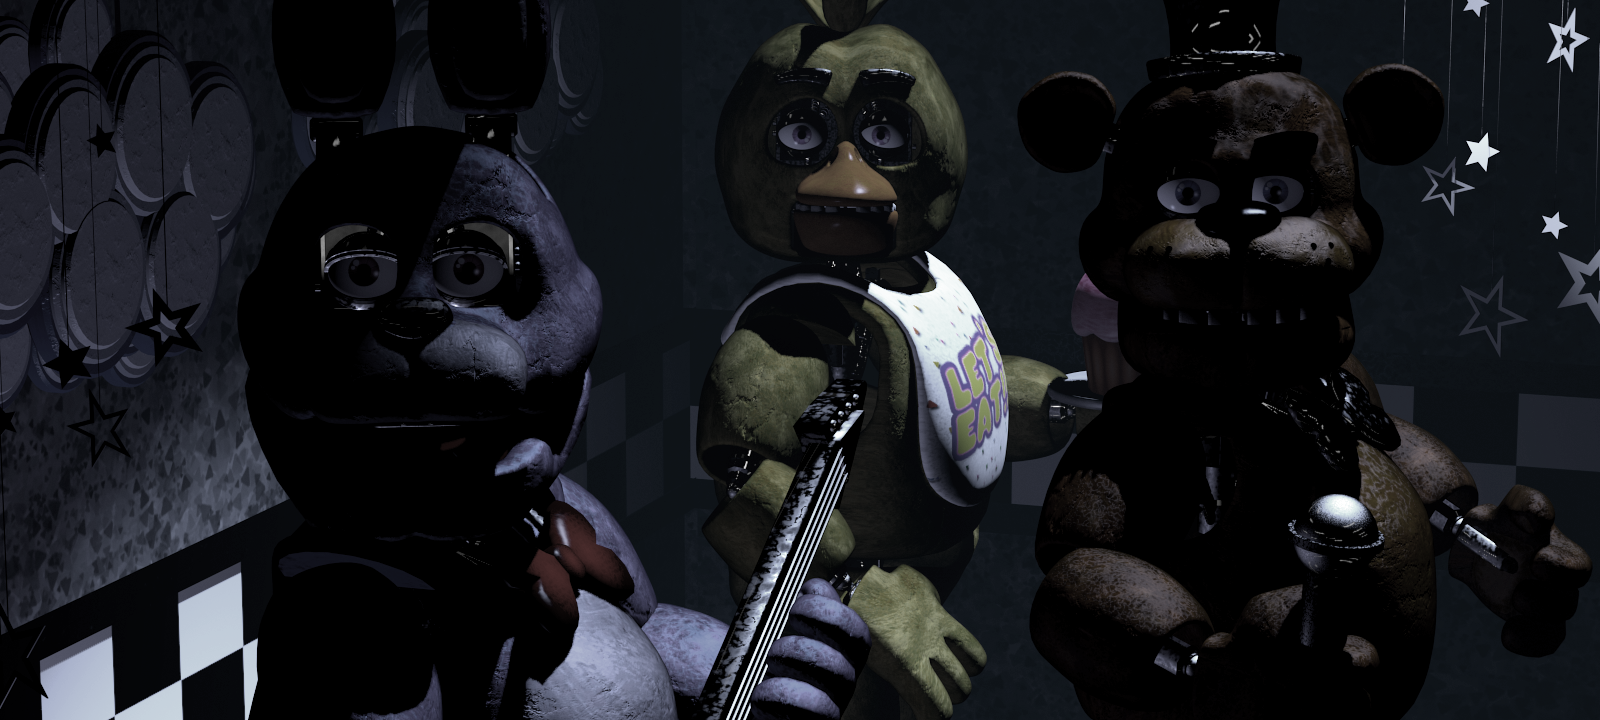 4159423_142613509753_is-five-nights-at-freddy-s-good-enough-to-become-a-mov.png